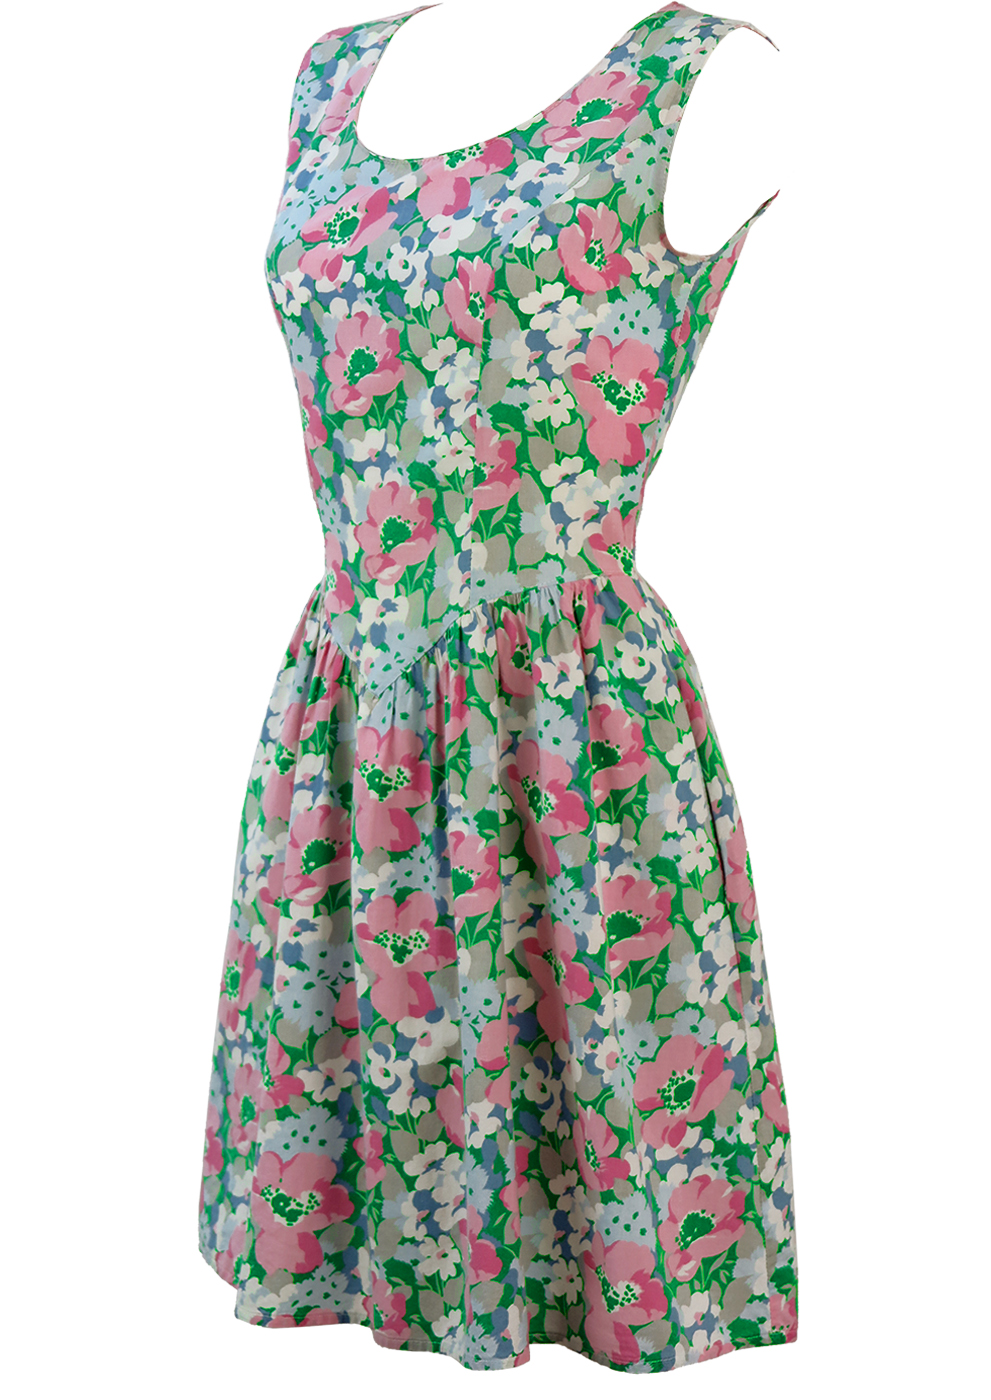 Above The Knee Sleeveless Flare Dress With Green Pink